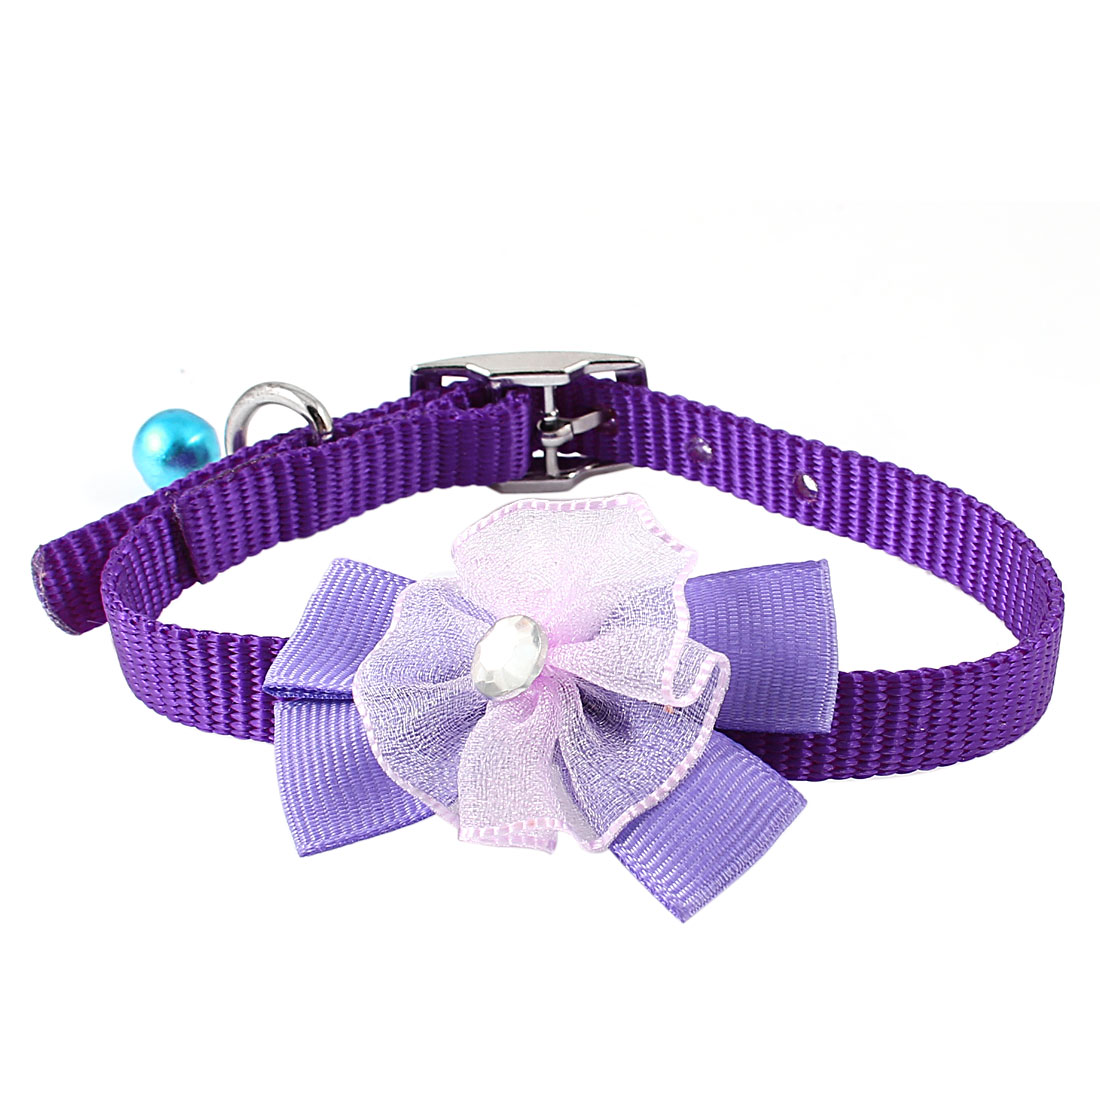 Single Prong Buckle Bowtie Faux Crystal Metal Bell Detail Nylon Adjustable Belt Collar Purple for Pet Cat Dog Doggy